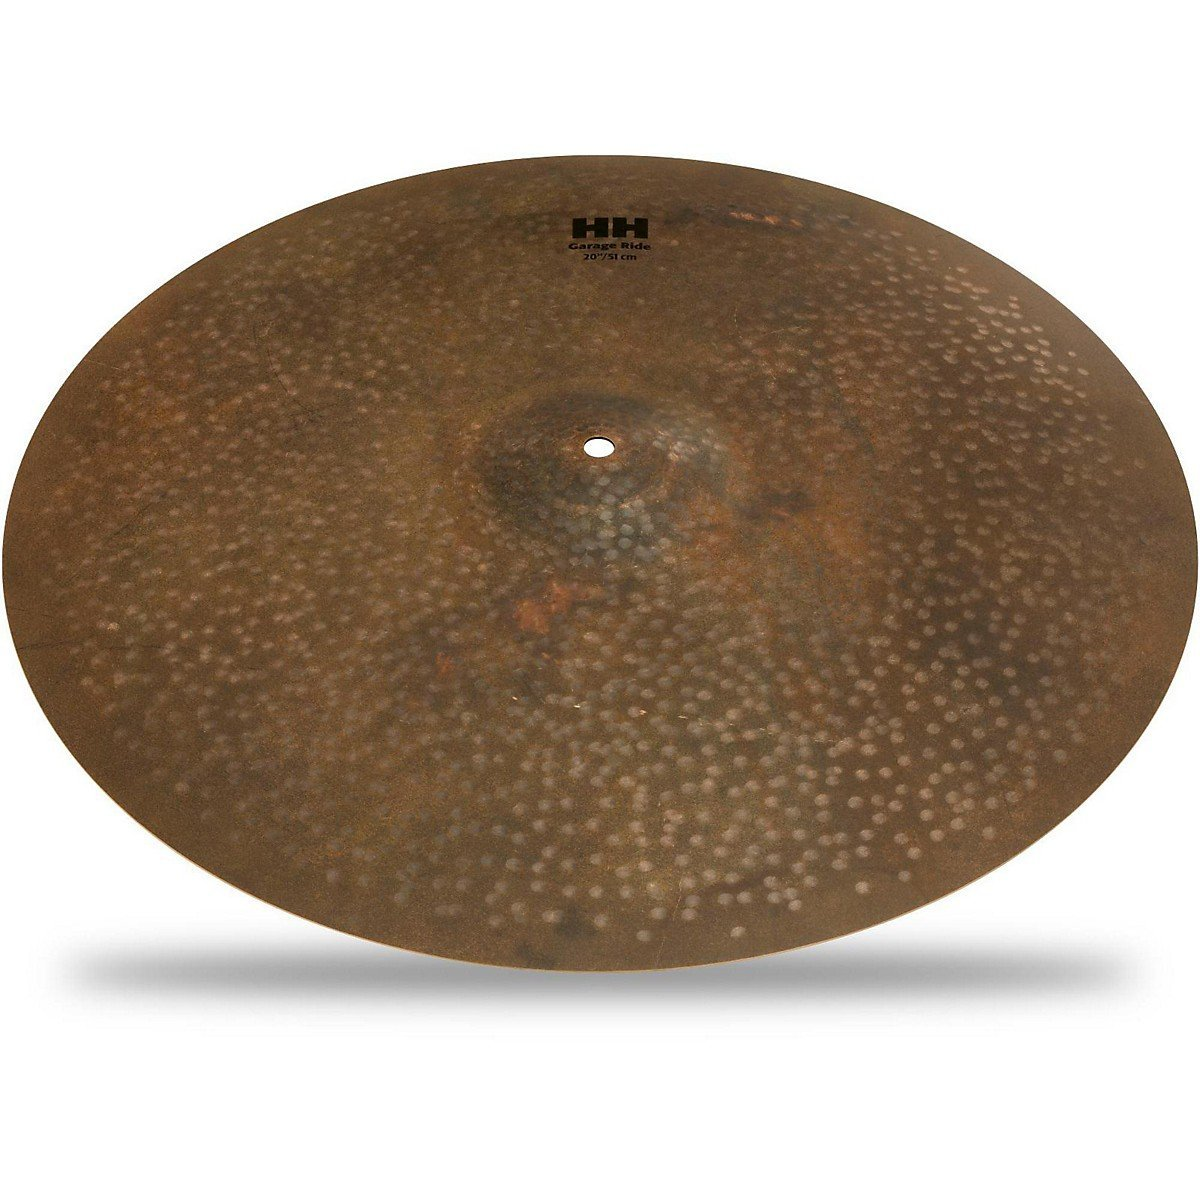 "Sabian 120102 HH Remastered 20"" Garage Ride Cymbal"